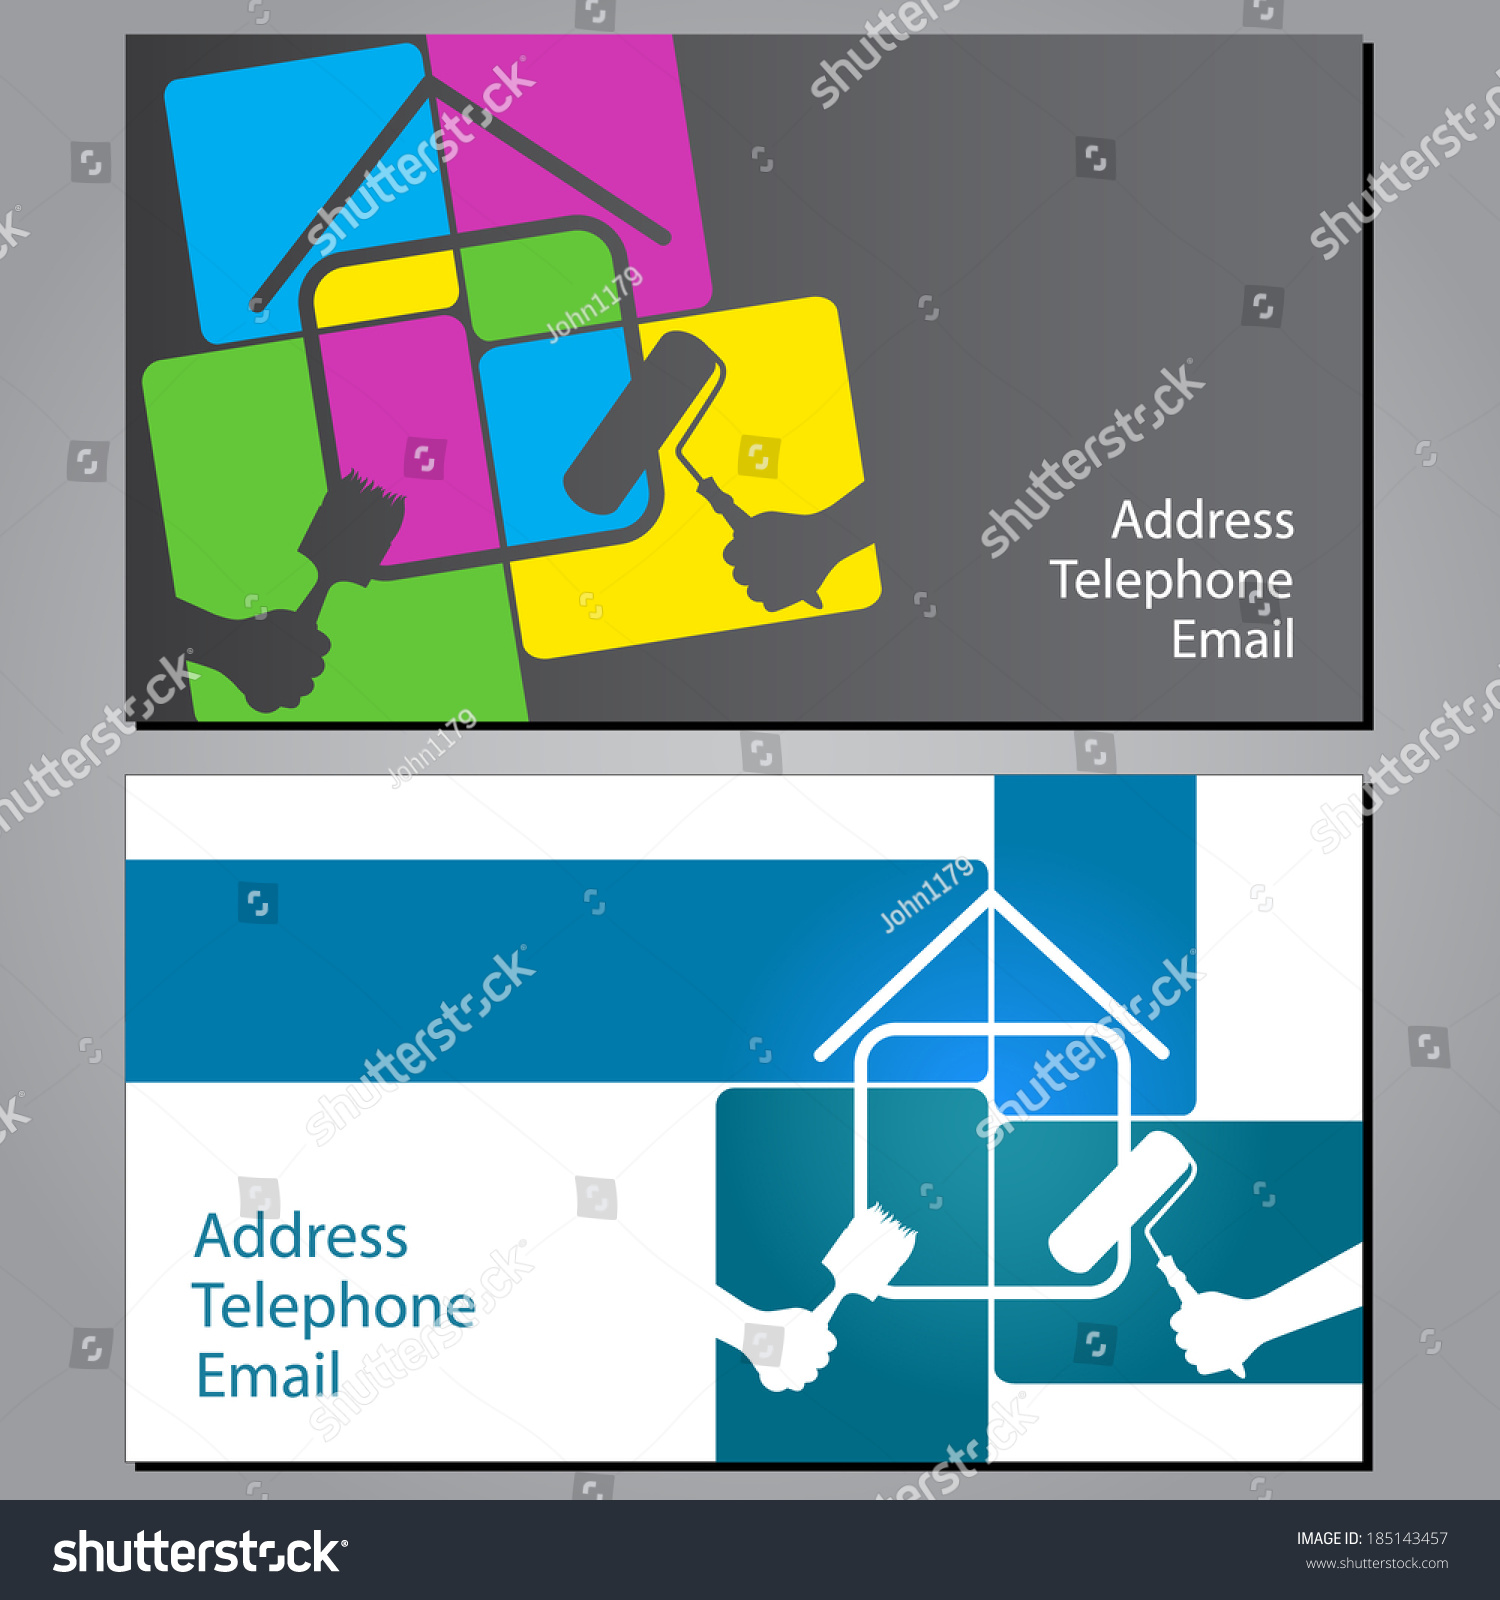 Design business cards painting houses vector stock vector 185143457 design business cards painting houses vector stock vector 185143457 shutterstock colourmoves